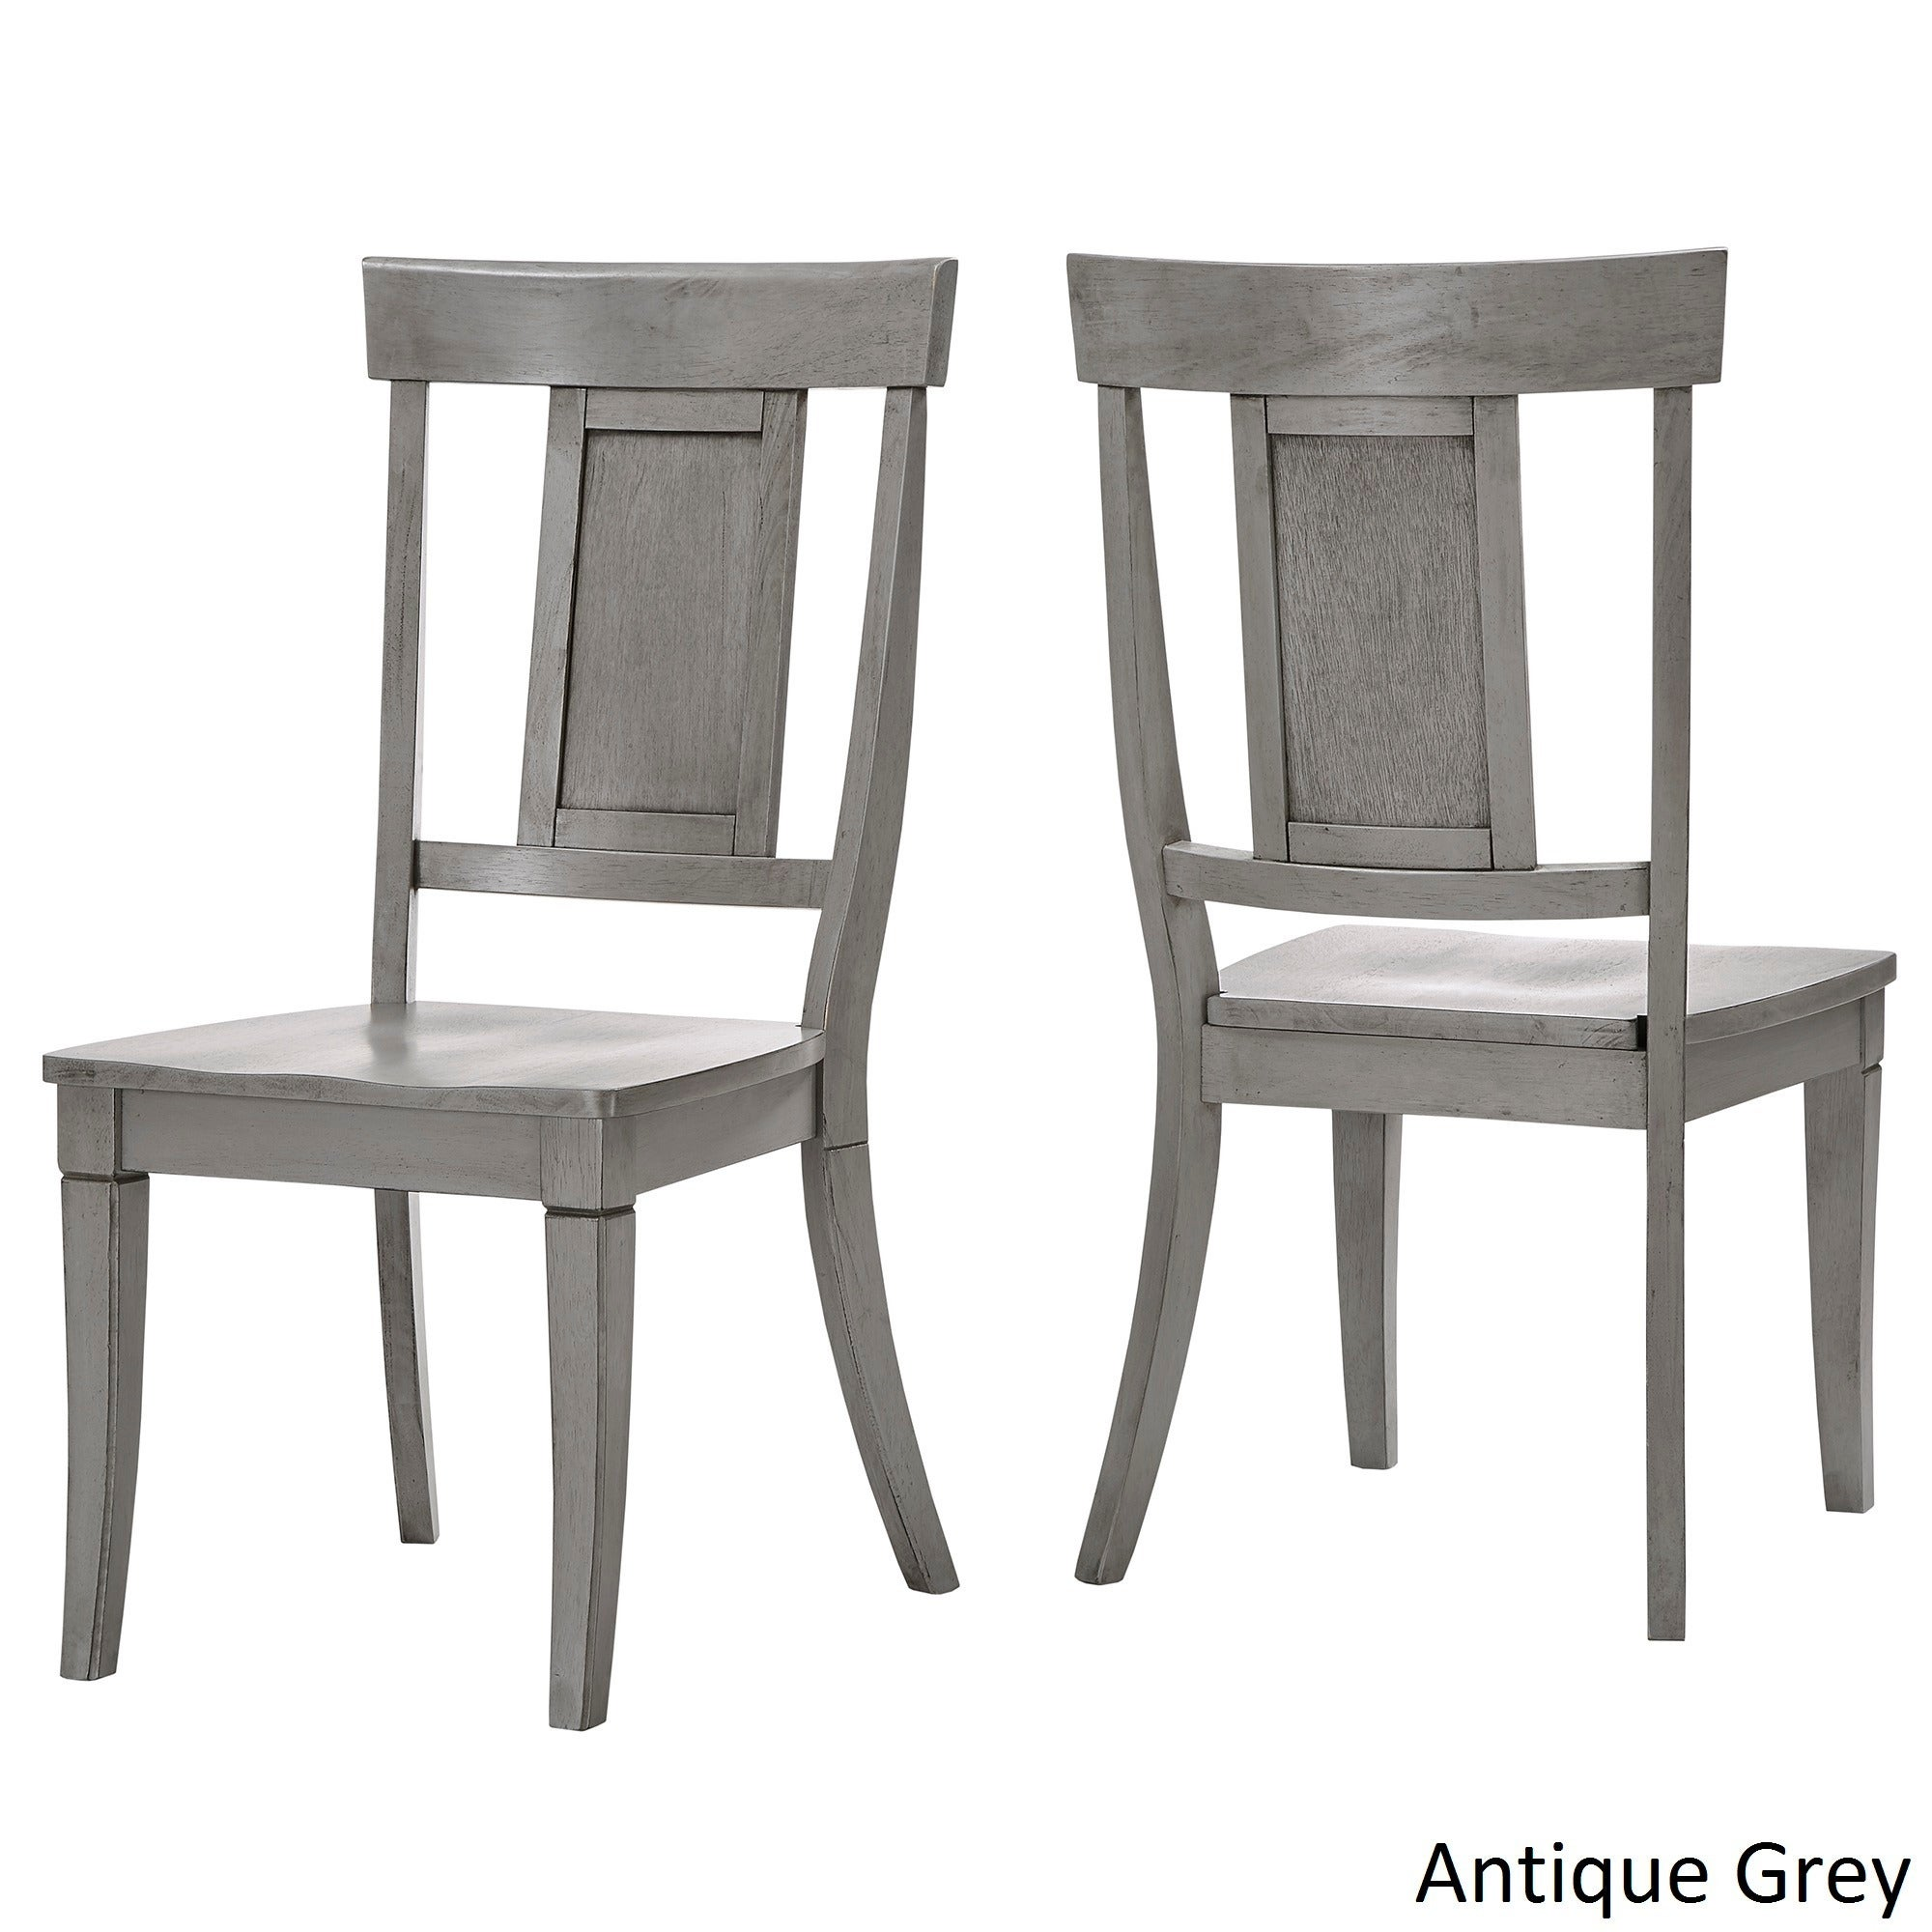 gray and white dining chairs round back shop eleanor panel back wood dining chair set of 2 by inspire classic on sale free shipping today overstockcom 13535890